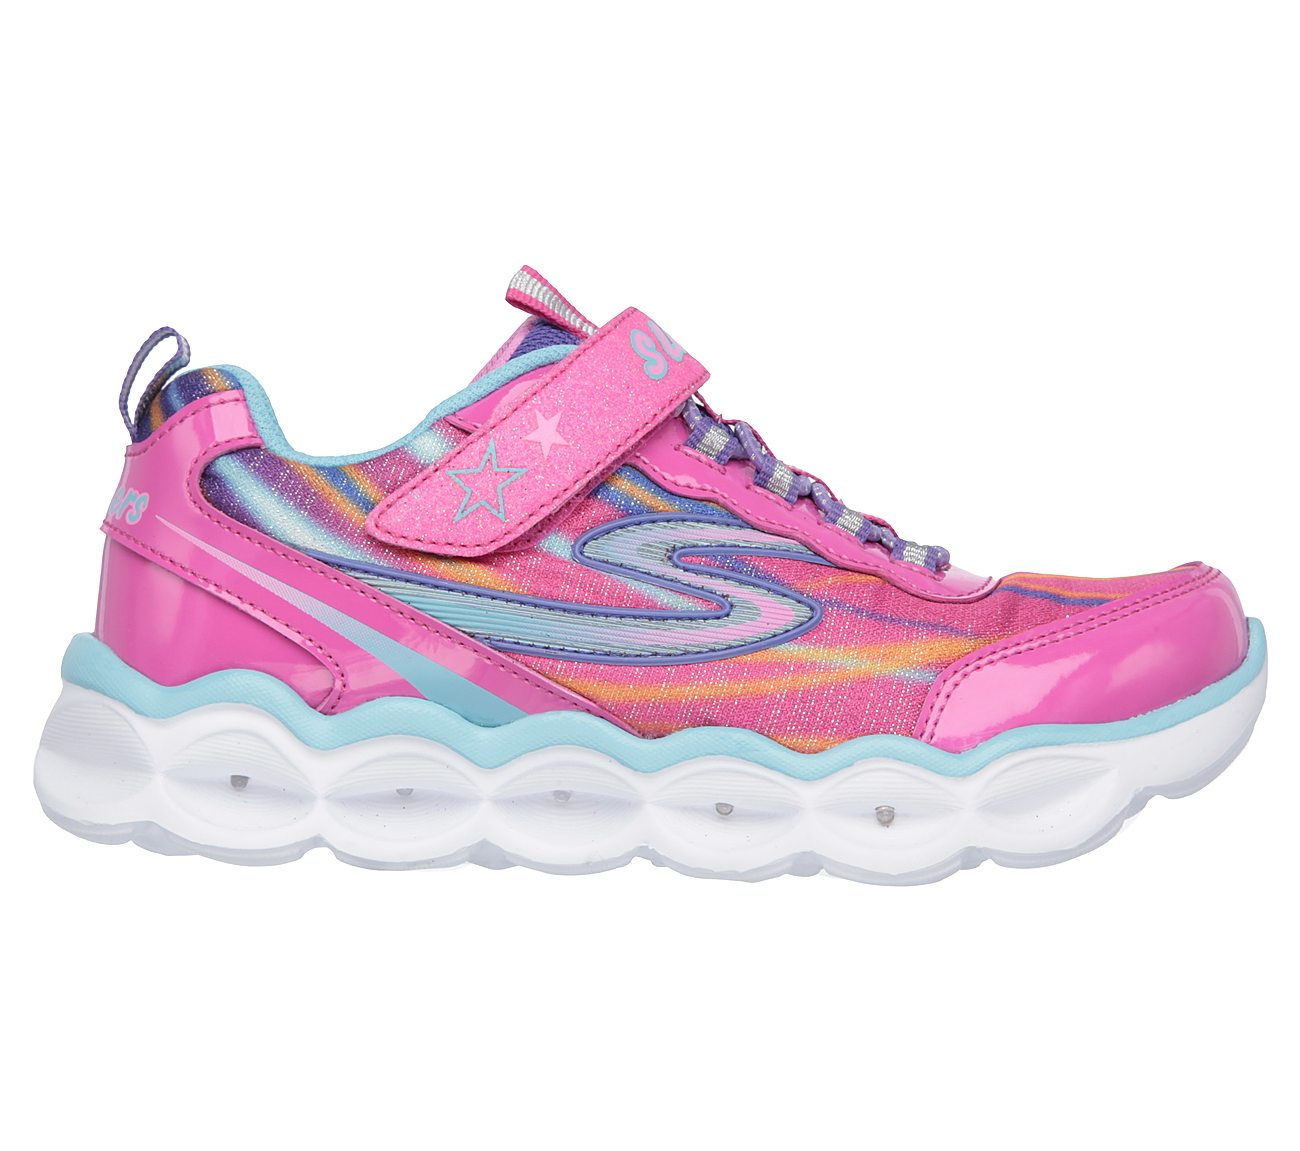 Hover to zoom. Hot Pink/Multi